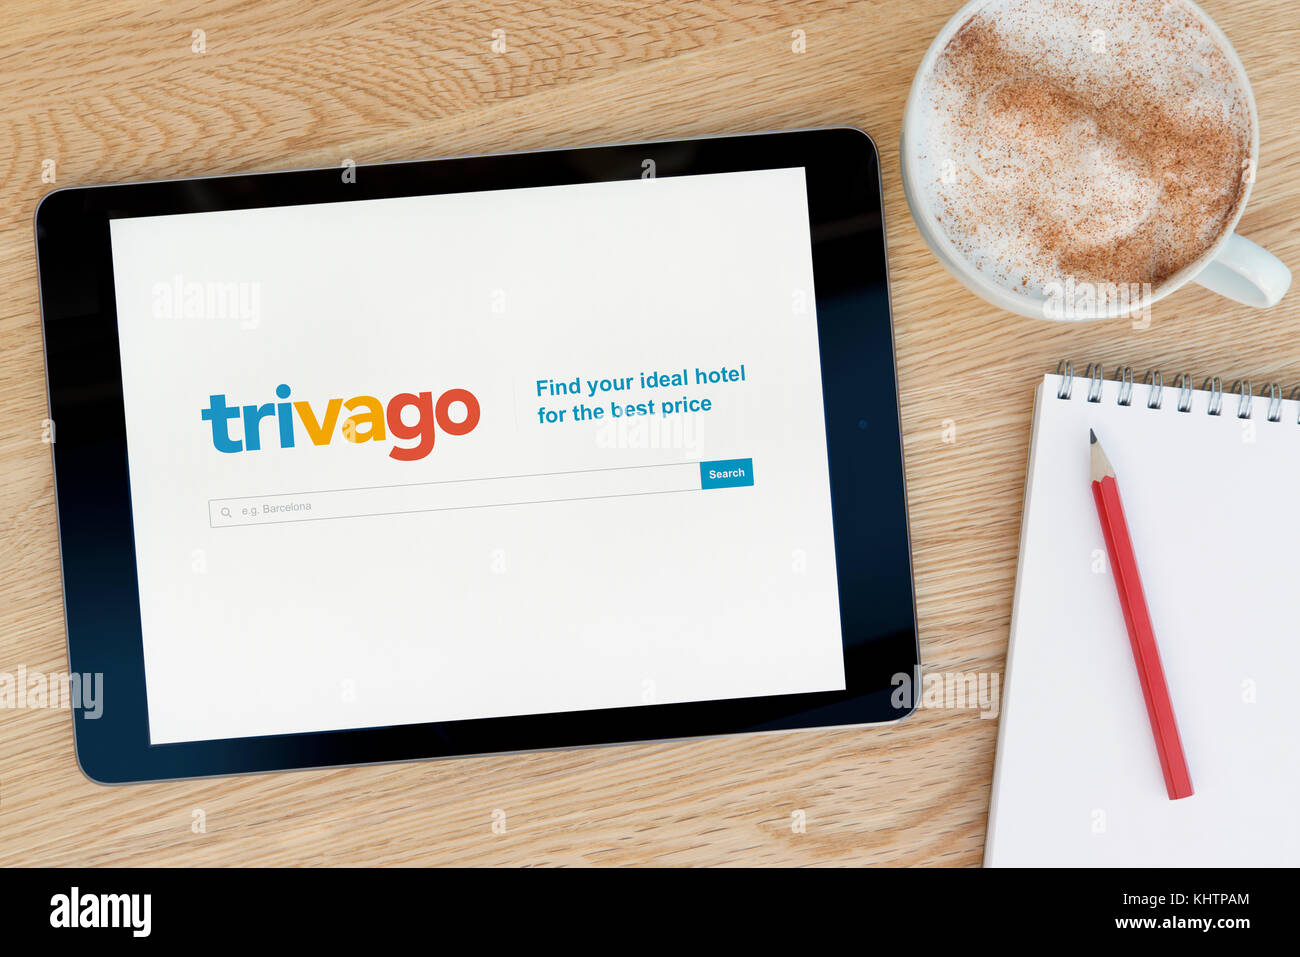 The Trivago website features on an iPad tablet device which rests on a wooden table beside a notepad and pencil - Stock Image